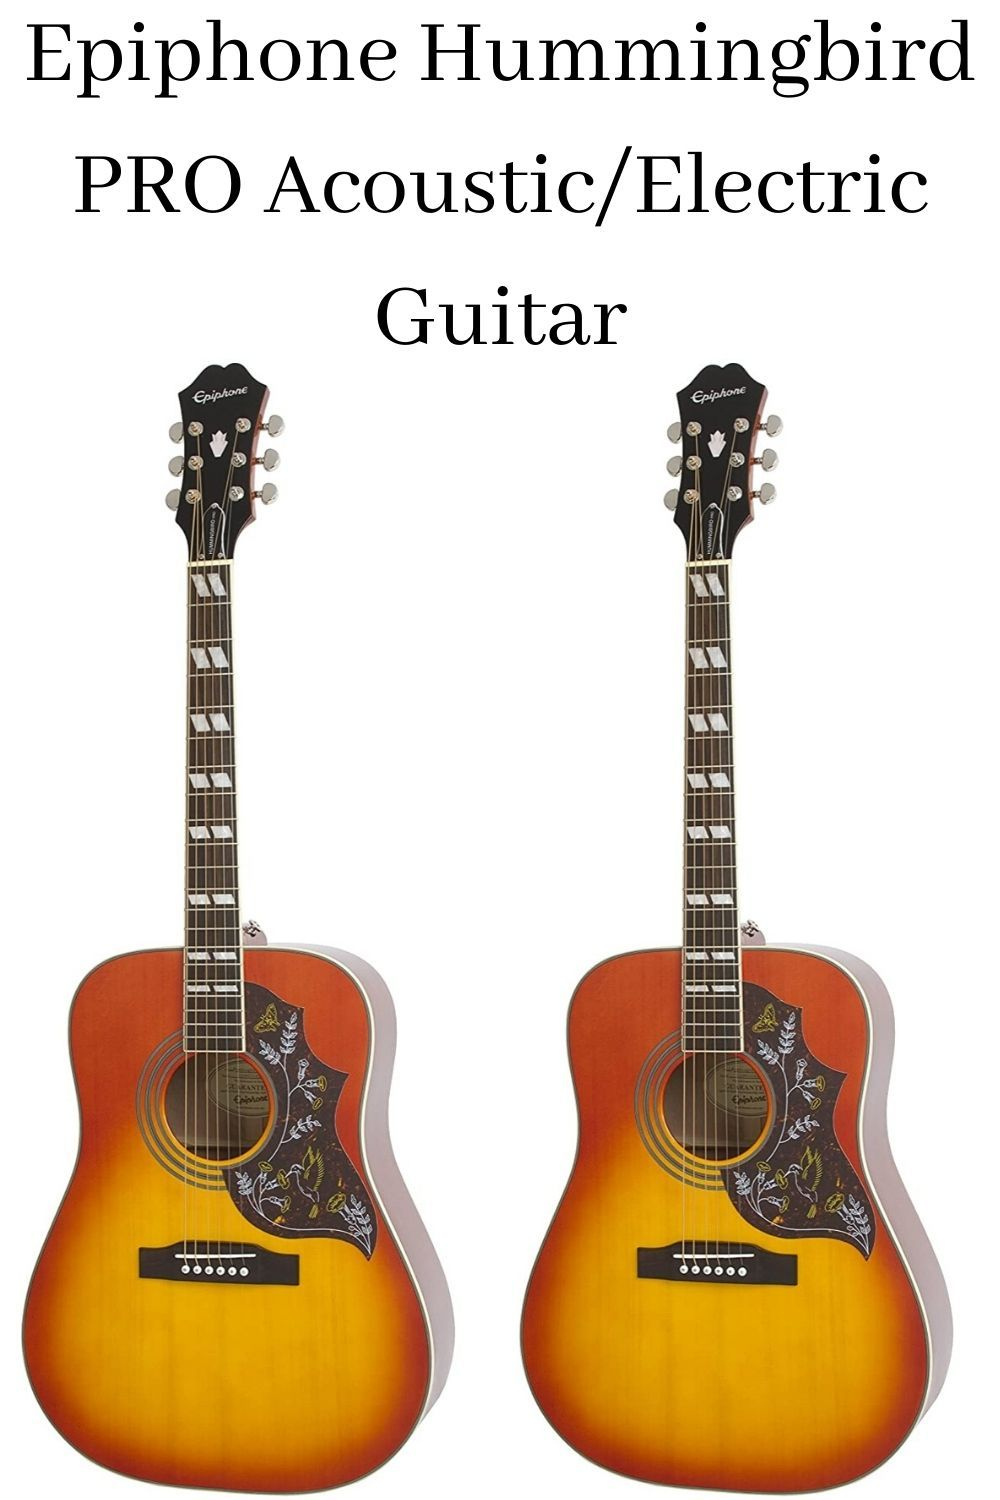 Epiphone Hummingbird PRO Acoustic/Electric Guitar in 2020